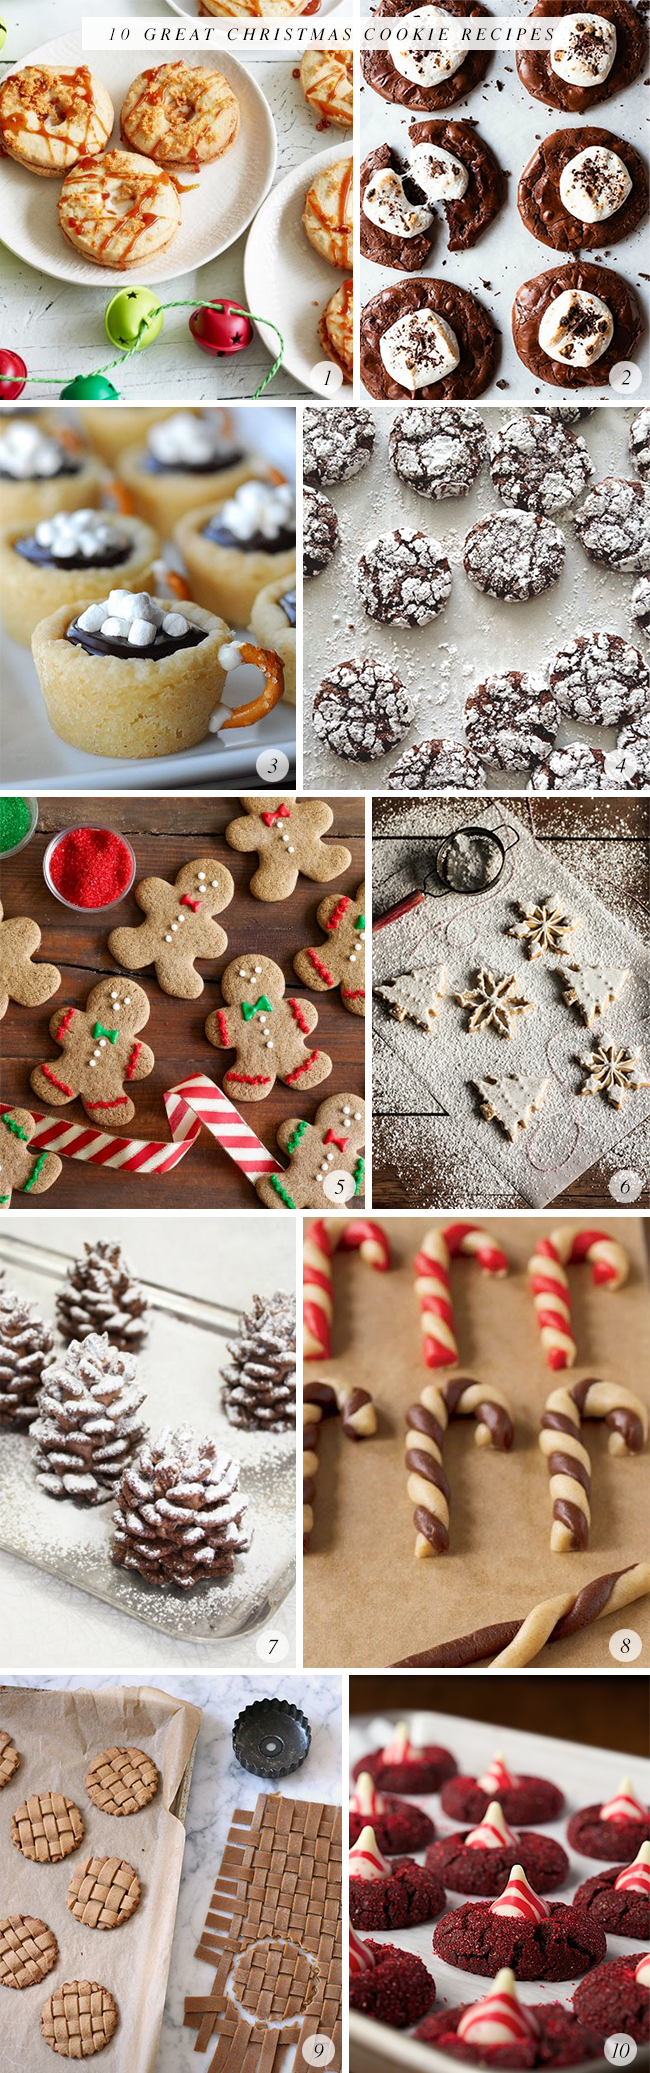 10 Great Christmas Cookie Recipes // Bubby and Bean